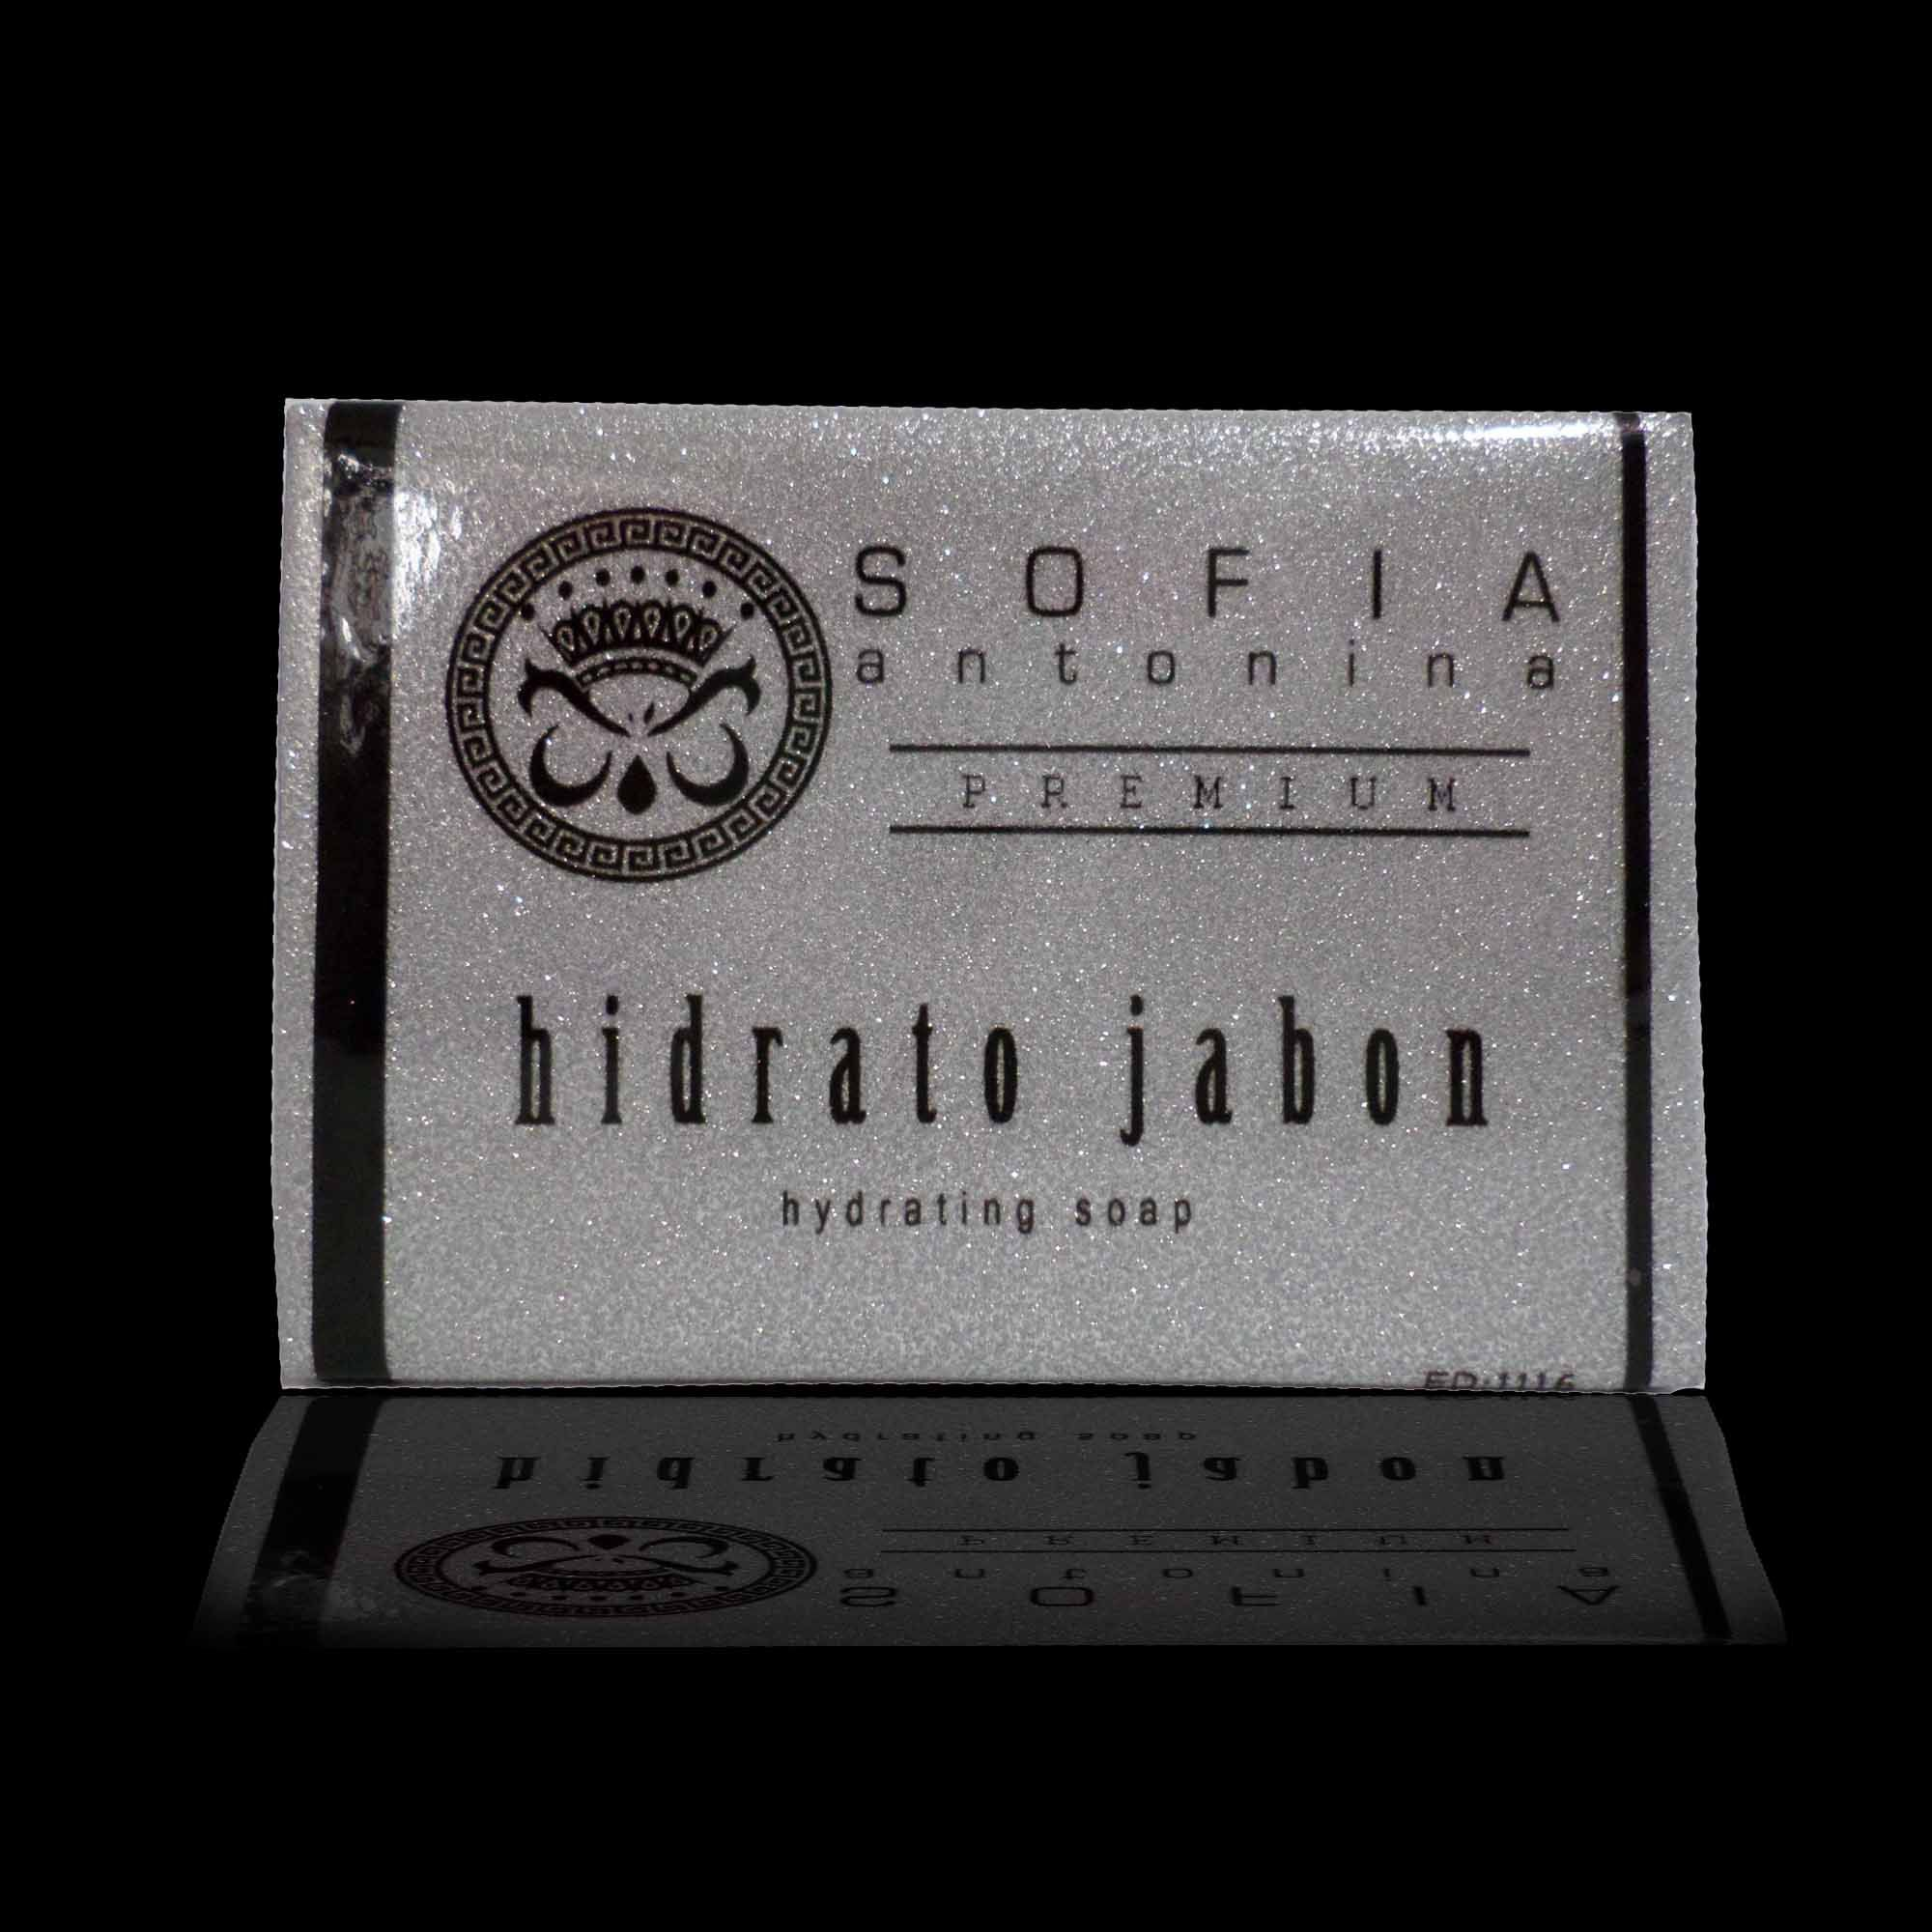 Hidrato Jabon, is our hydrating soap that refreshes and rejuvinates the skin and to rehydrate your skin's glow